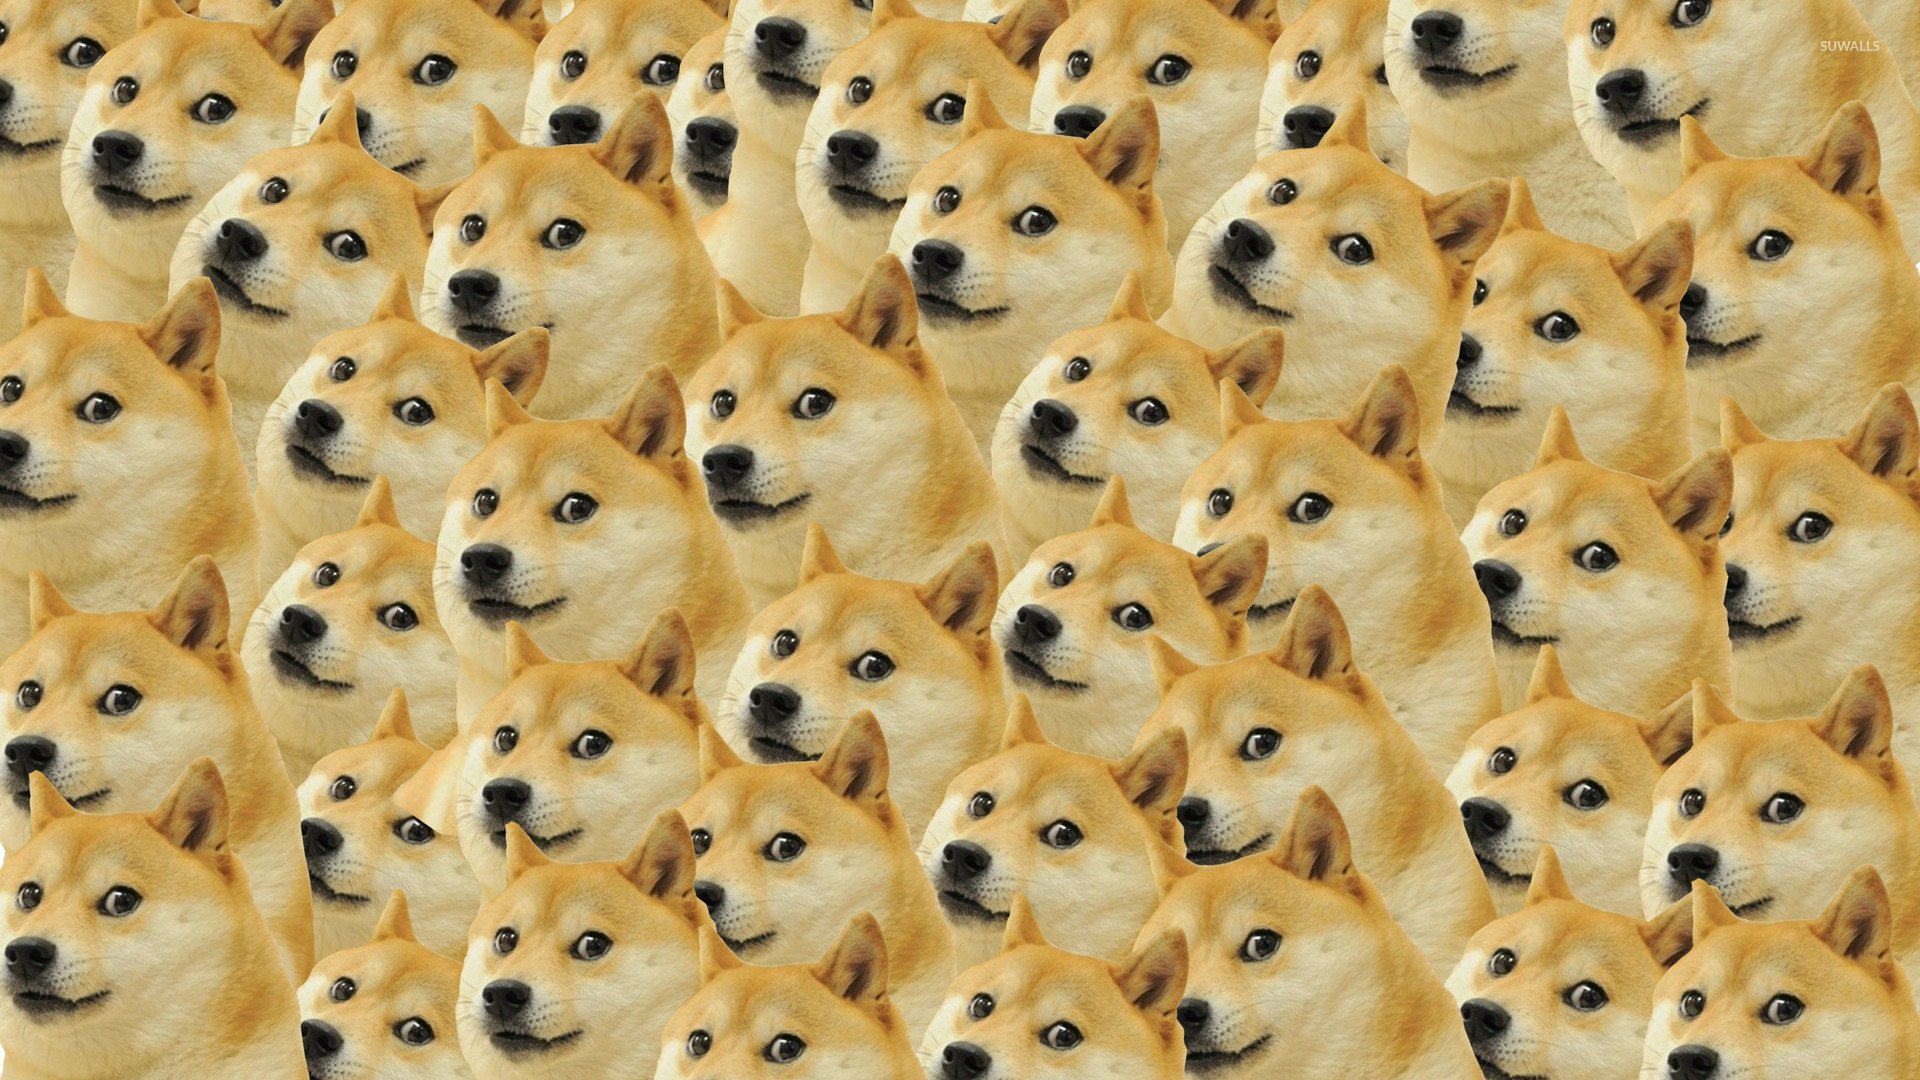 Doge pattern wallpaper   Meme wallpapers   27481 1920x1080